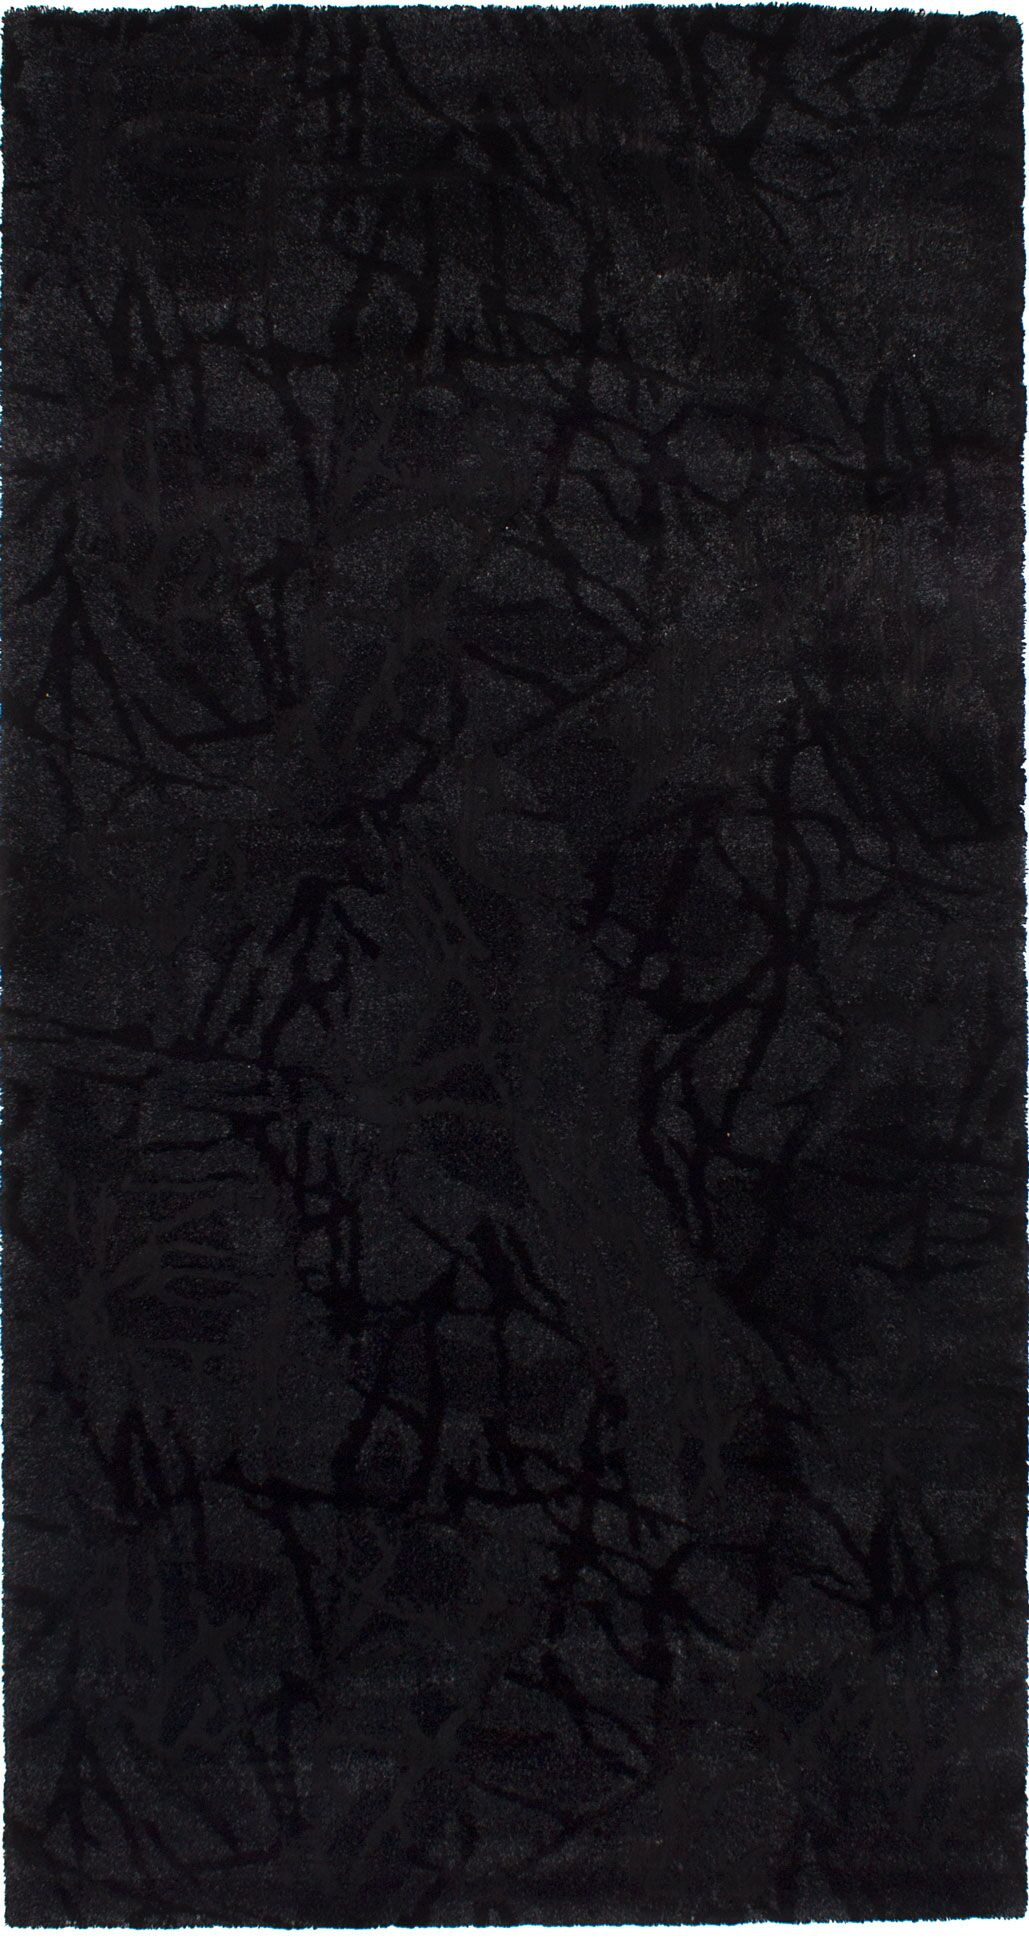 Purmerend Black Area Rug Rug Size: Rectangle 5'6